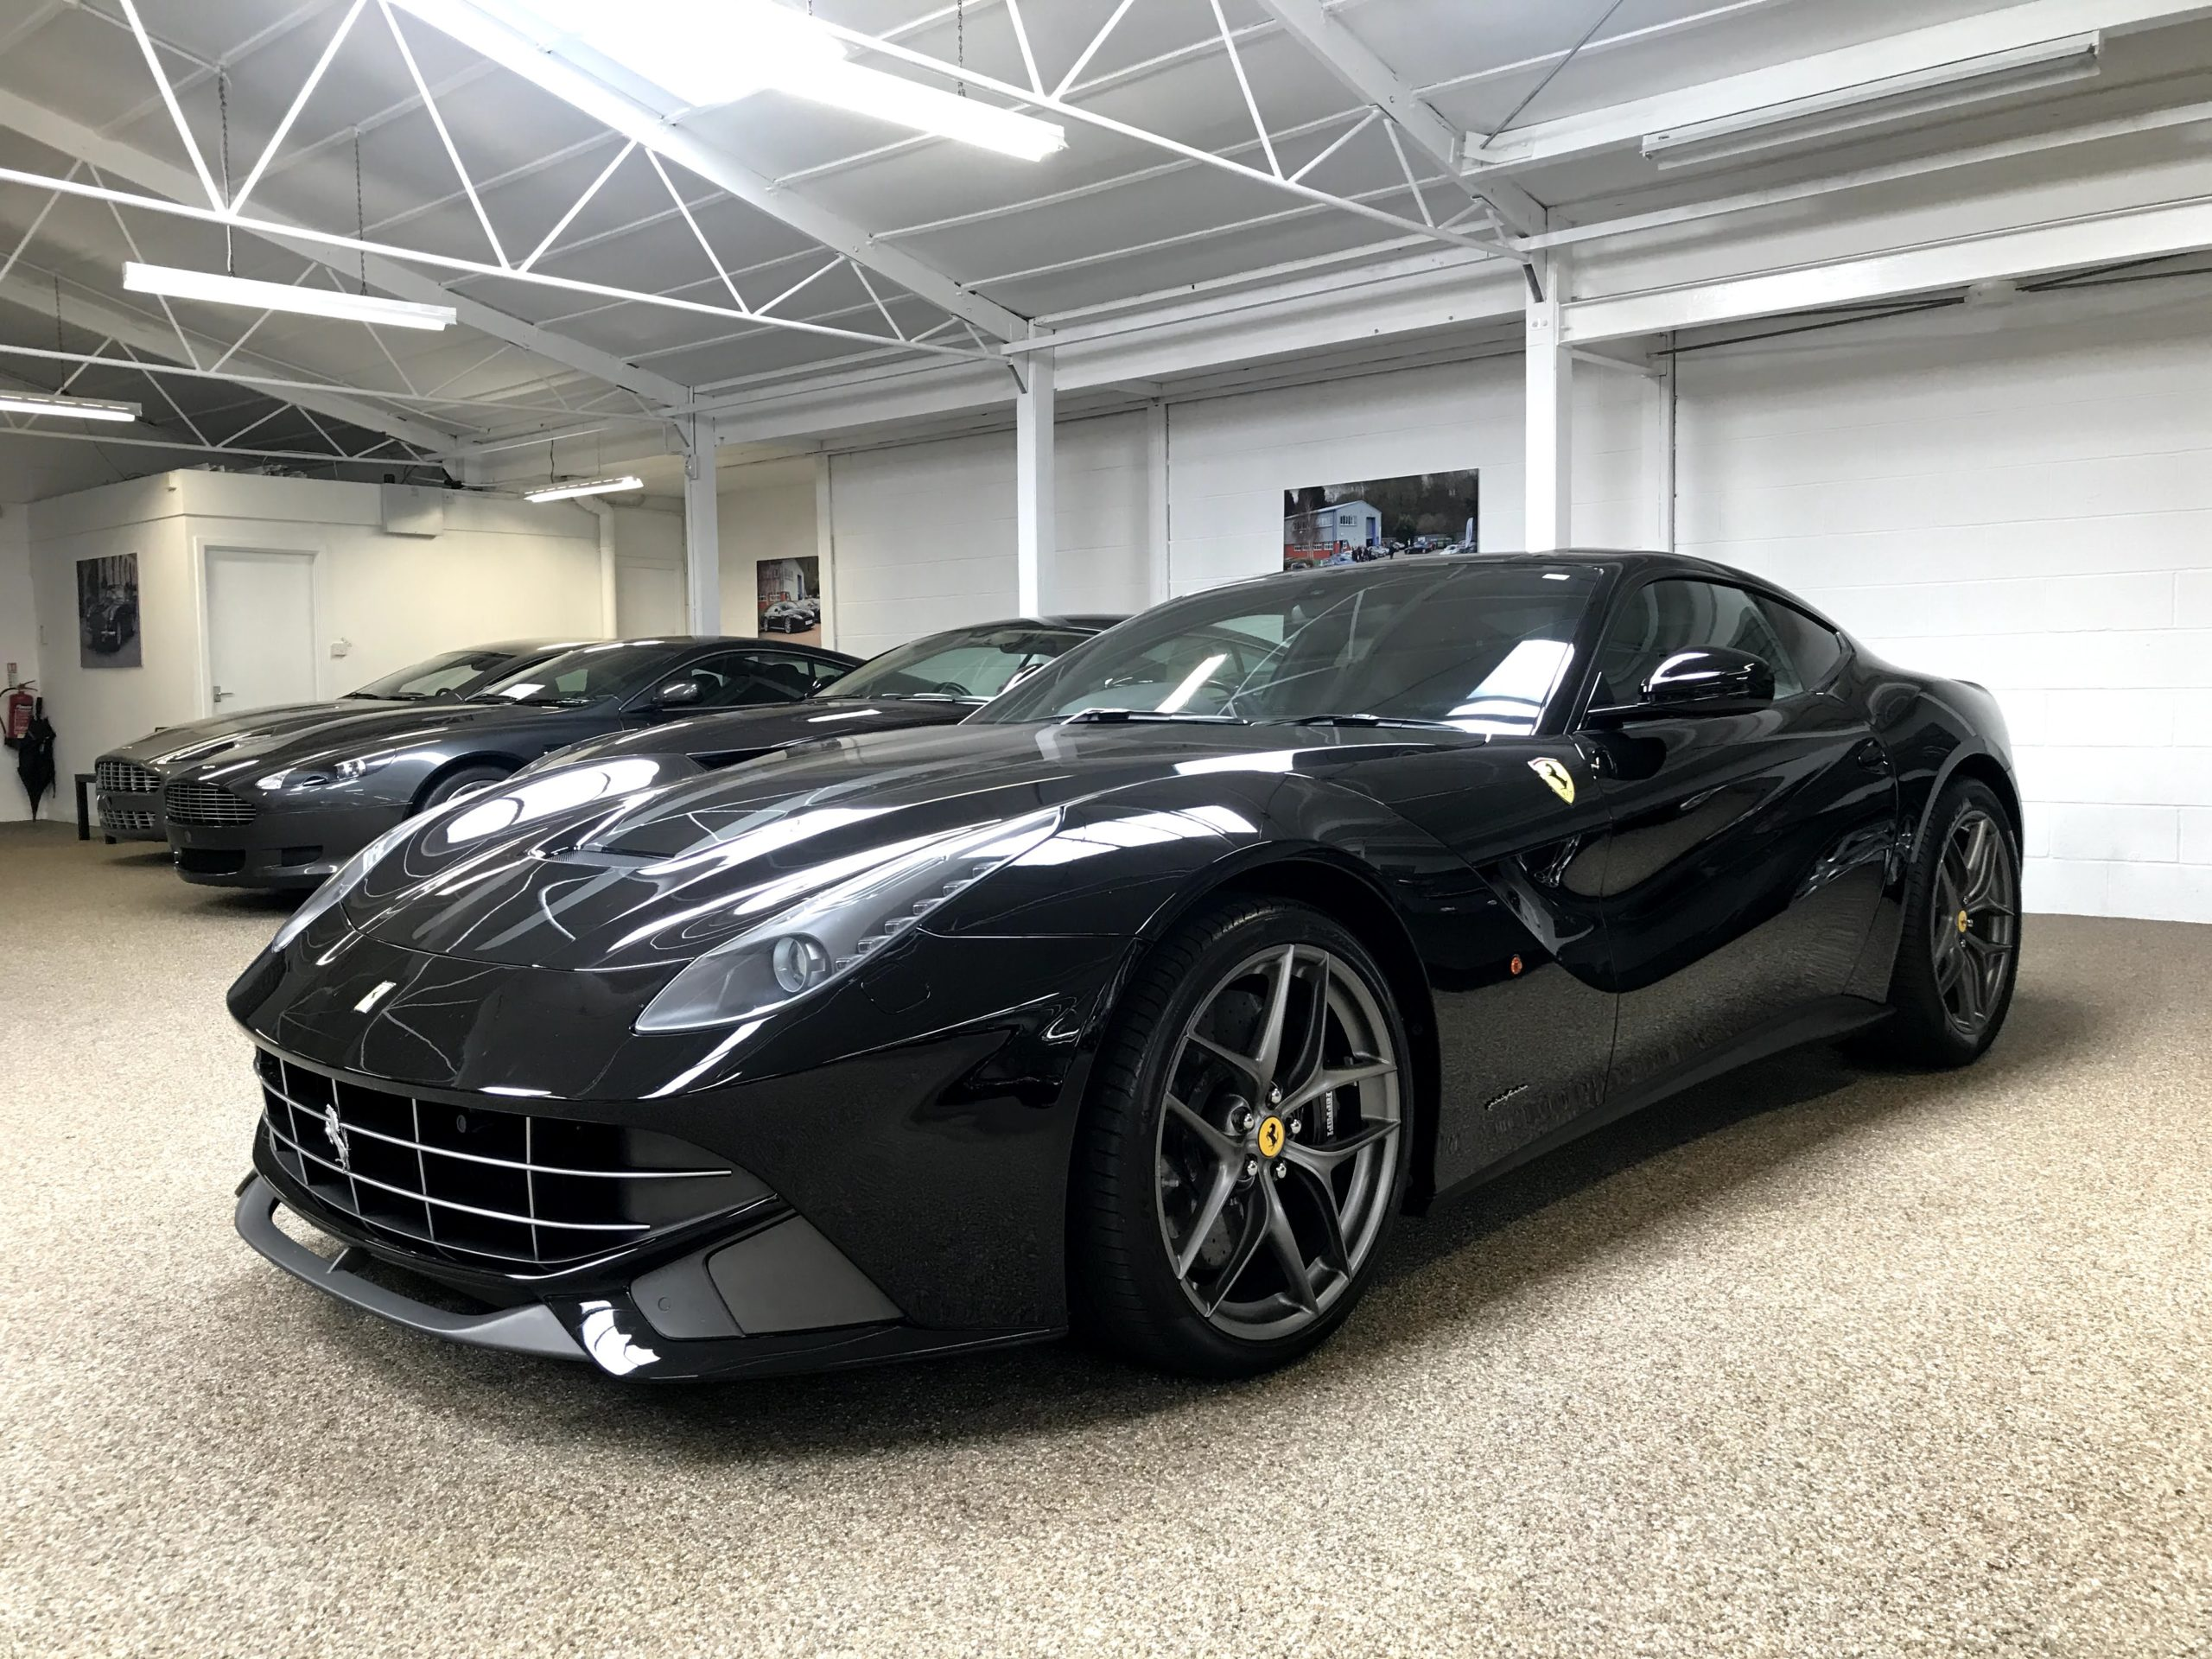 Ferrari F12 for sale